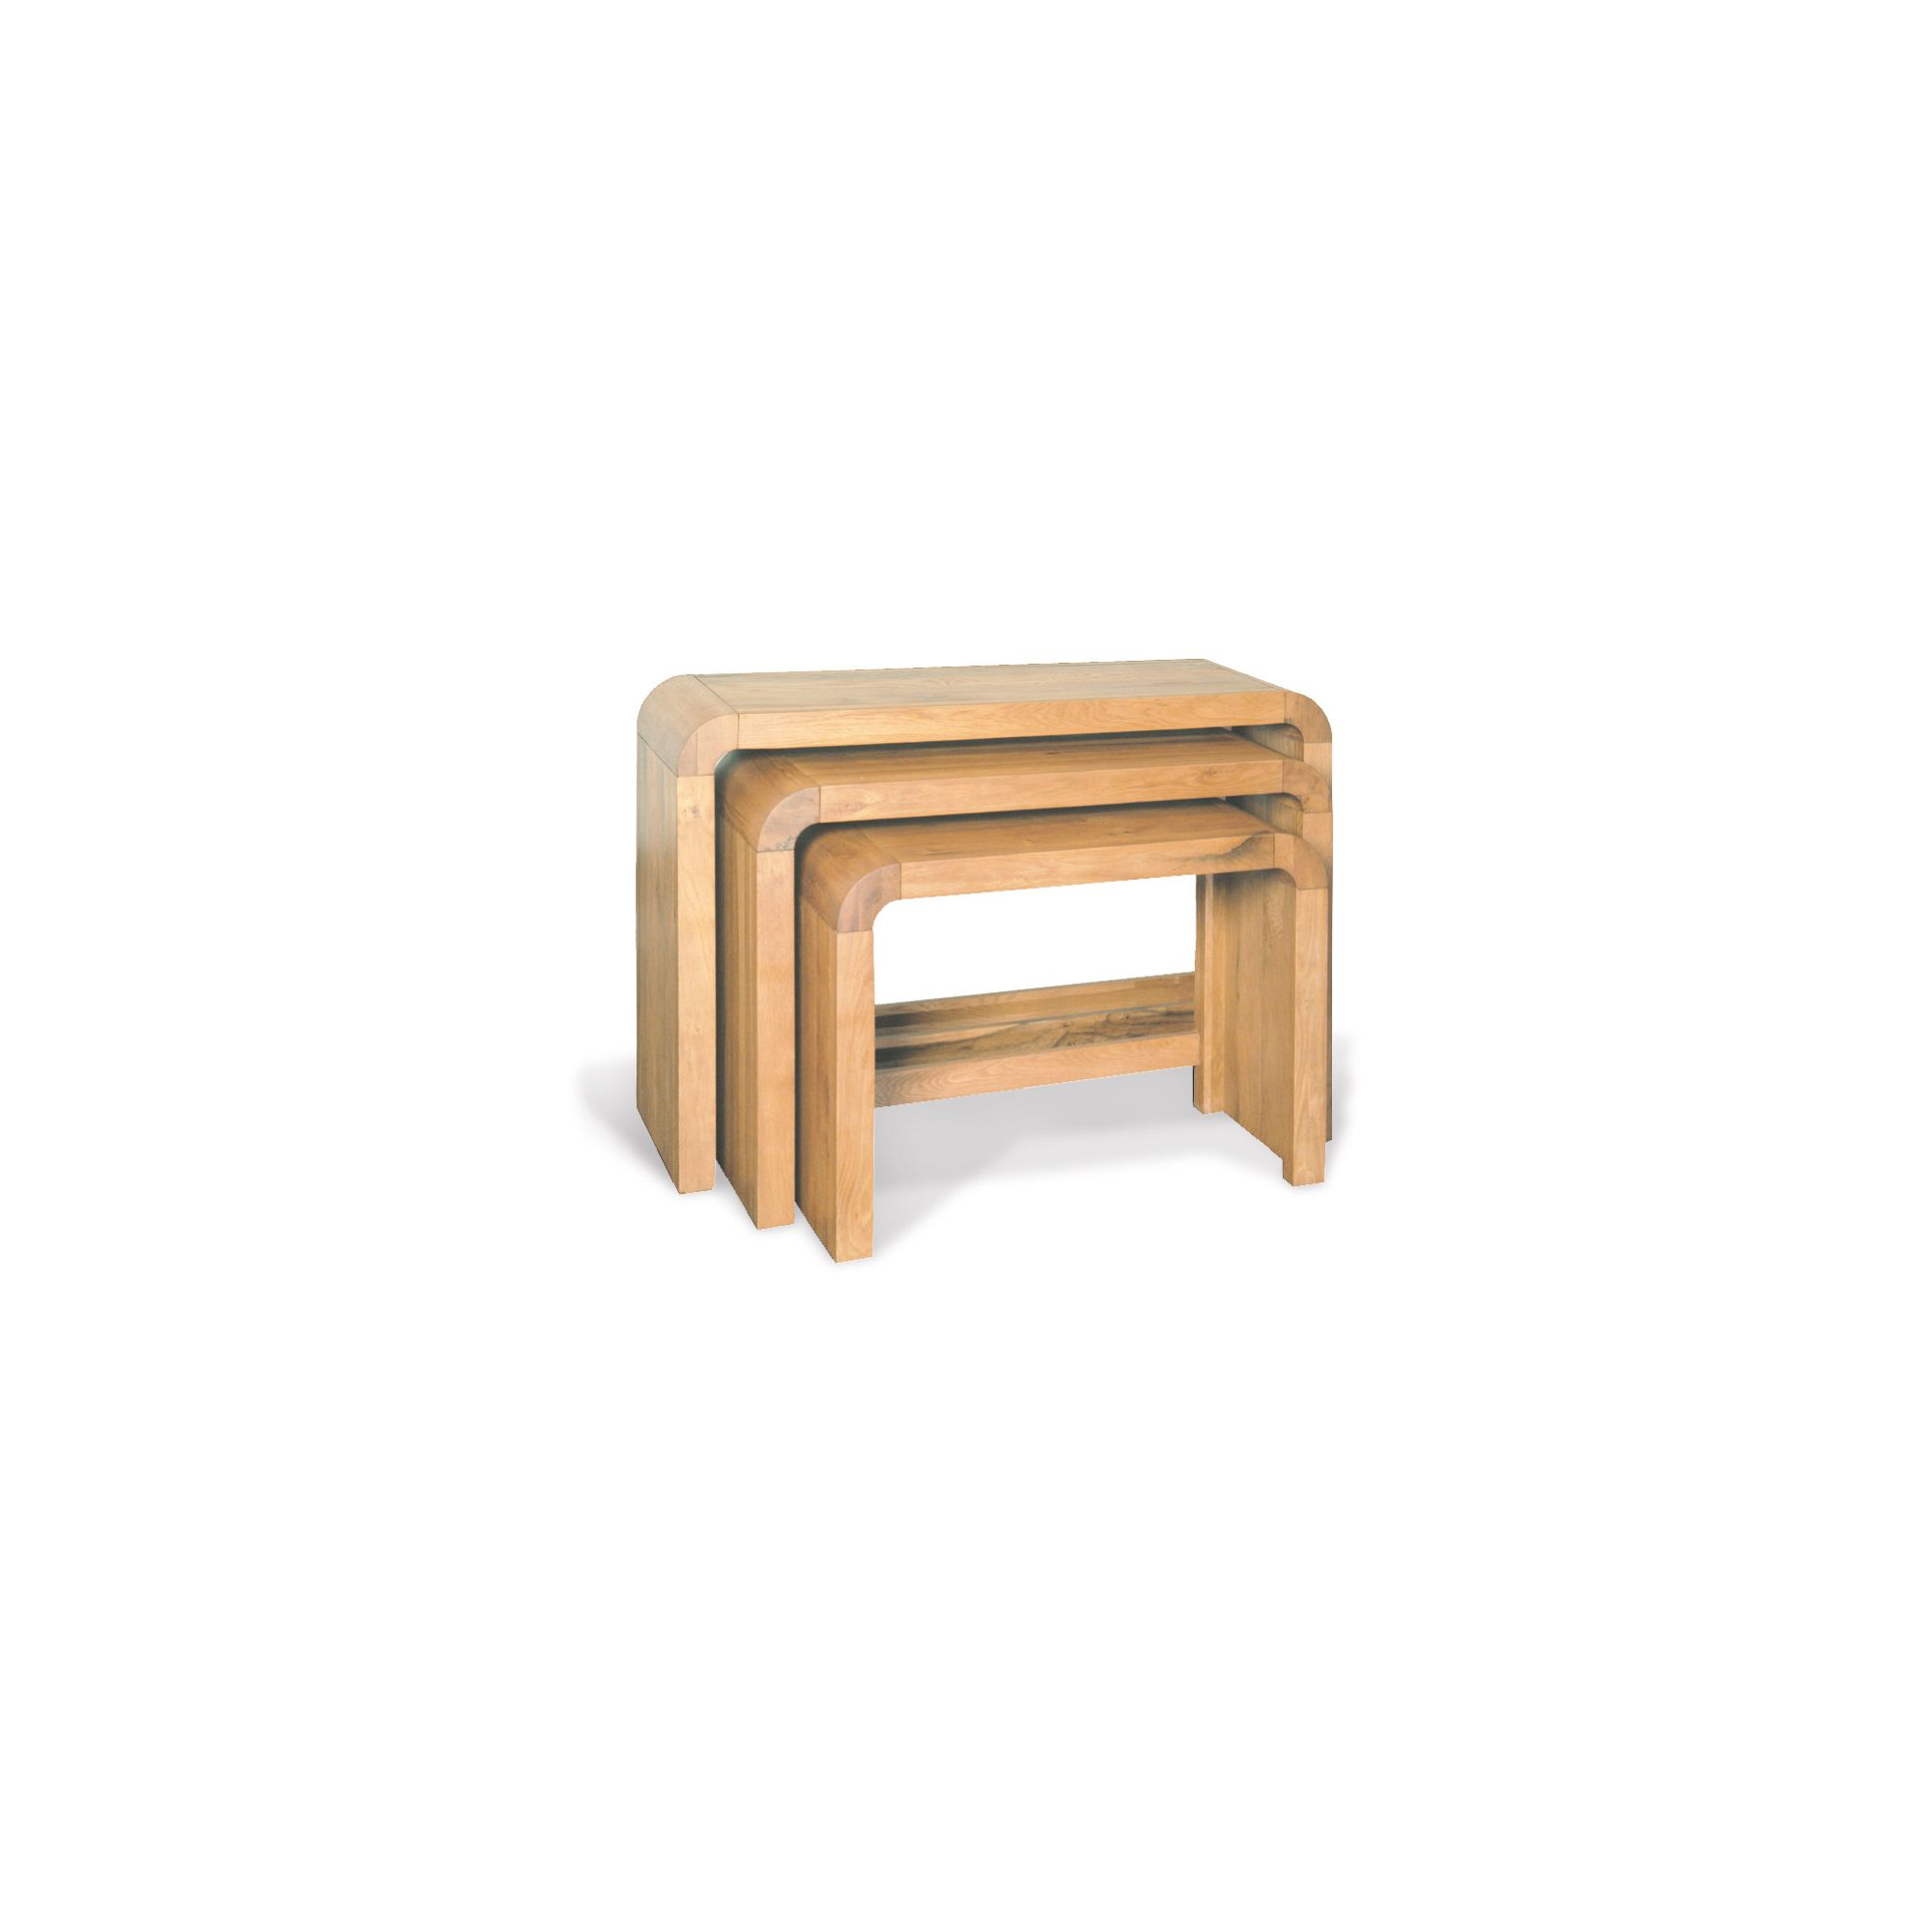 Oceans Apart Cadence Oak Living Consol Table Nest Of 3 at Tesco Direct